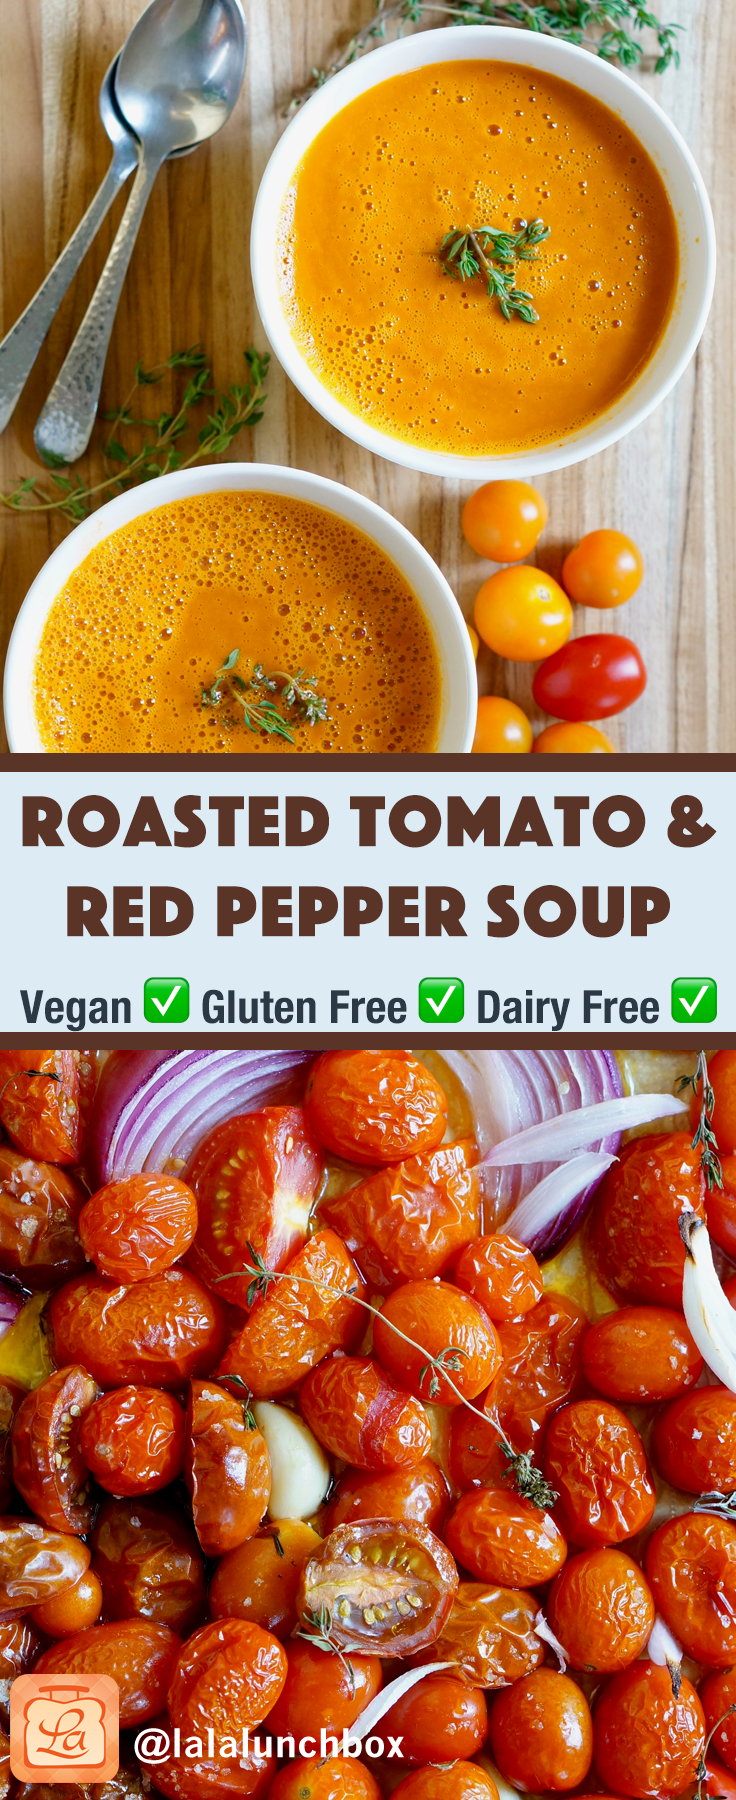 Roasted Tomato Red Pepper Soup Pin